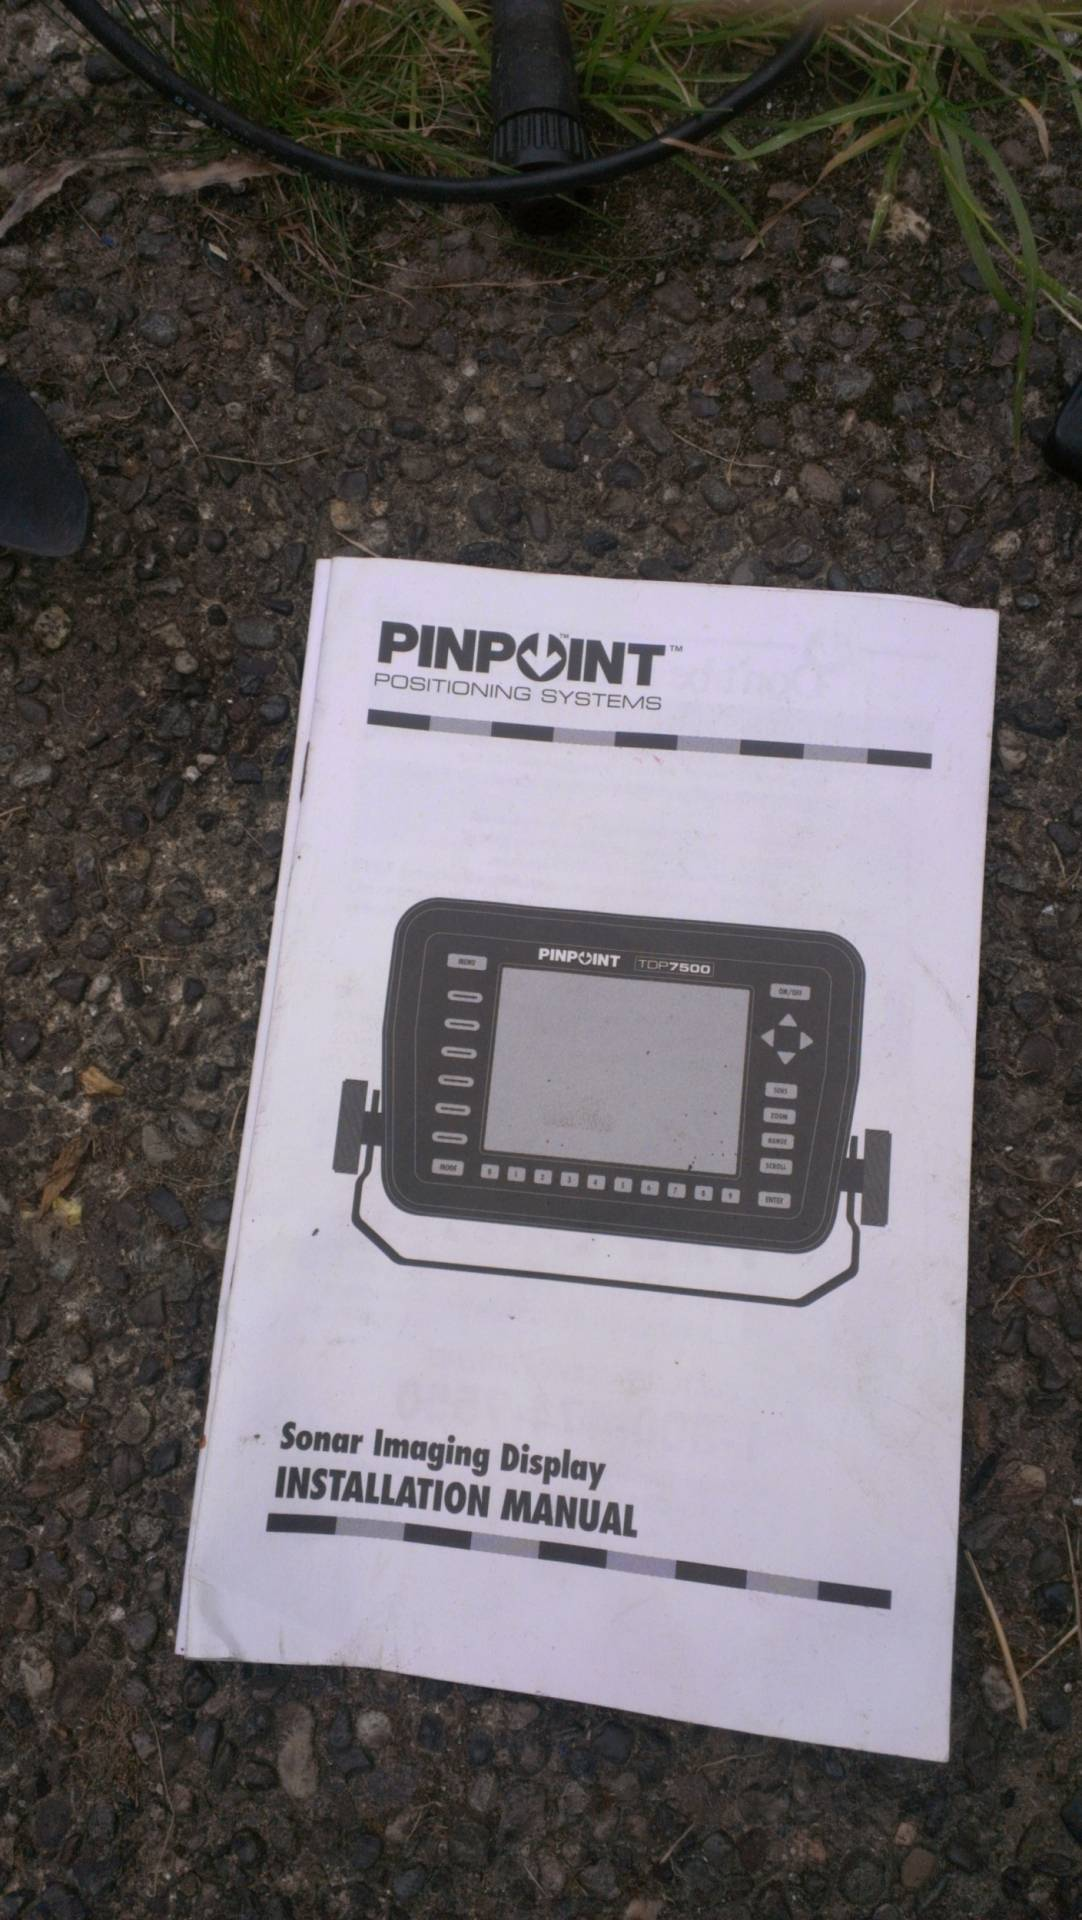 Pinpoint 3700 Wiring Diagram And Schematics Sonar Diagrams Home Imag0081